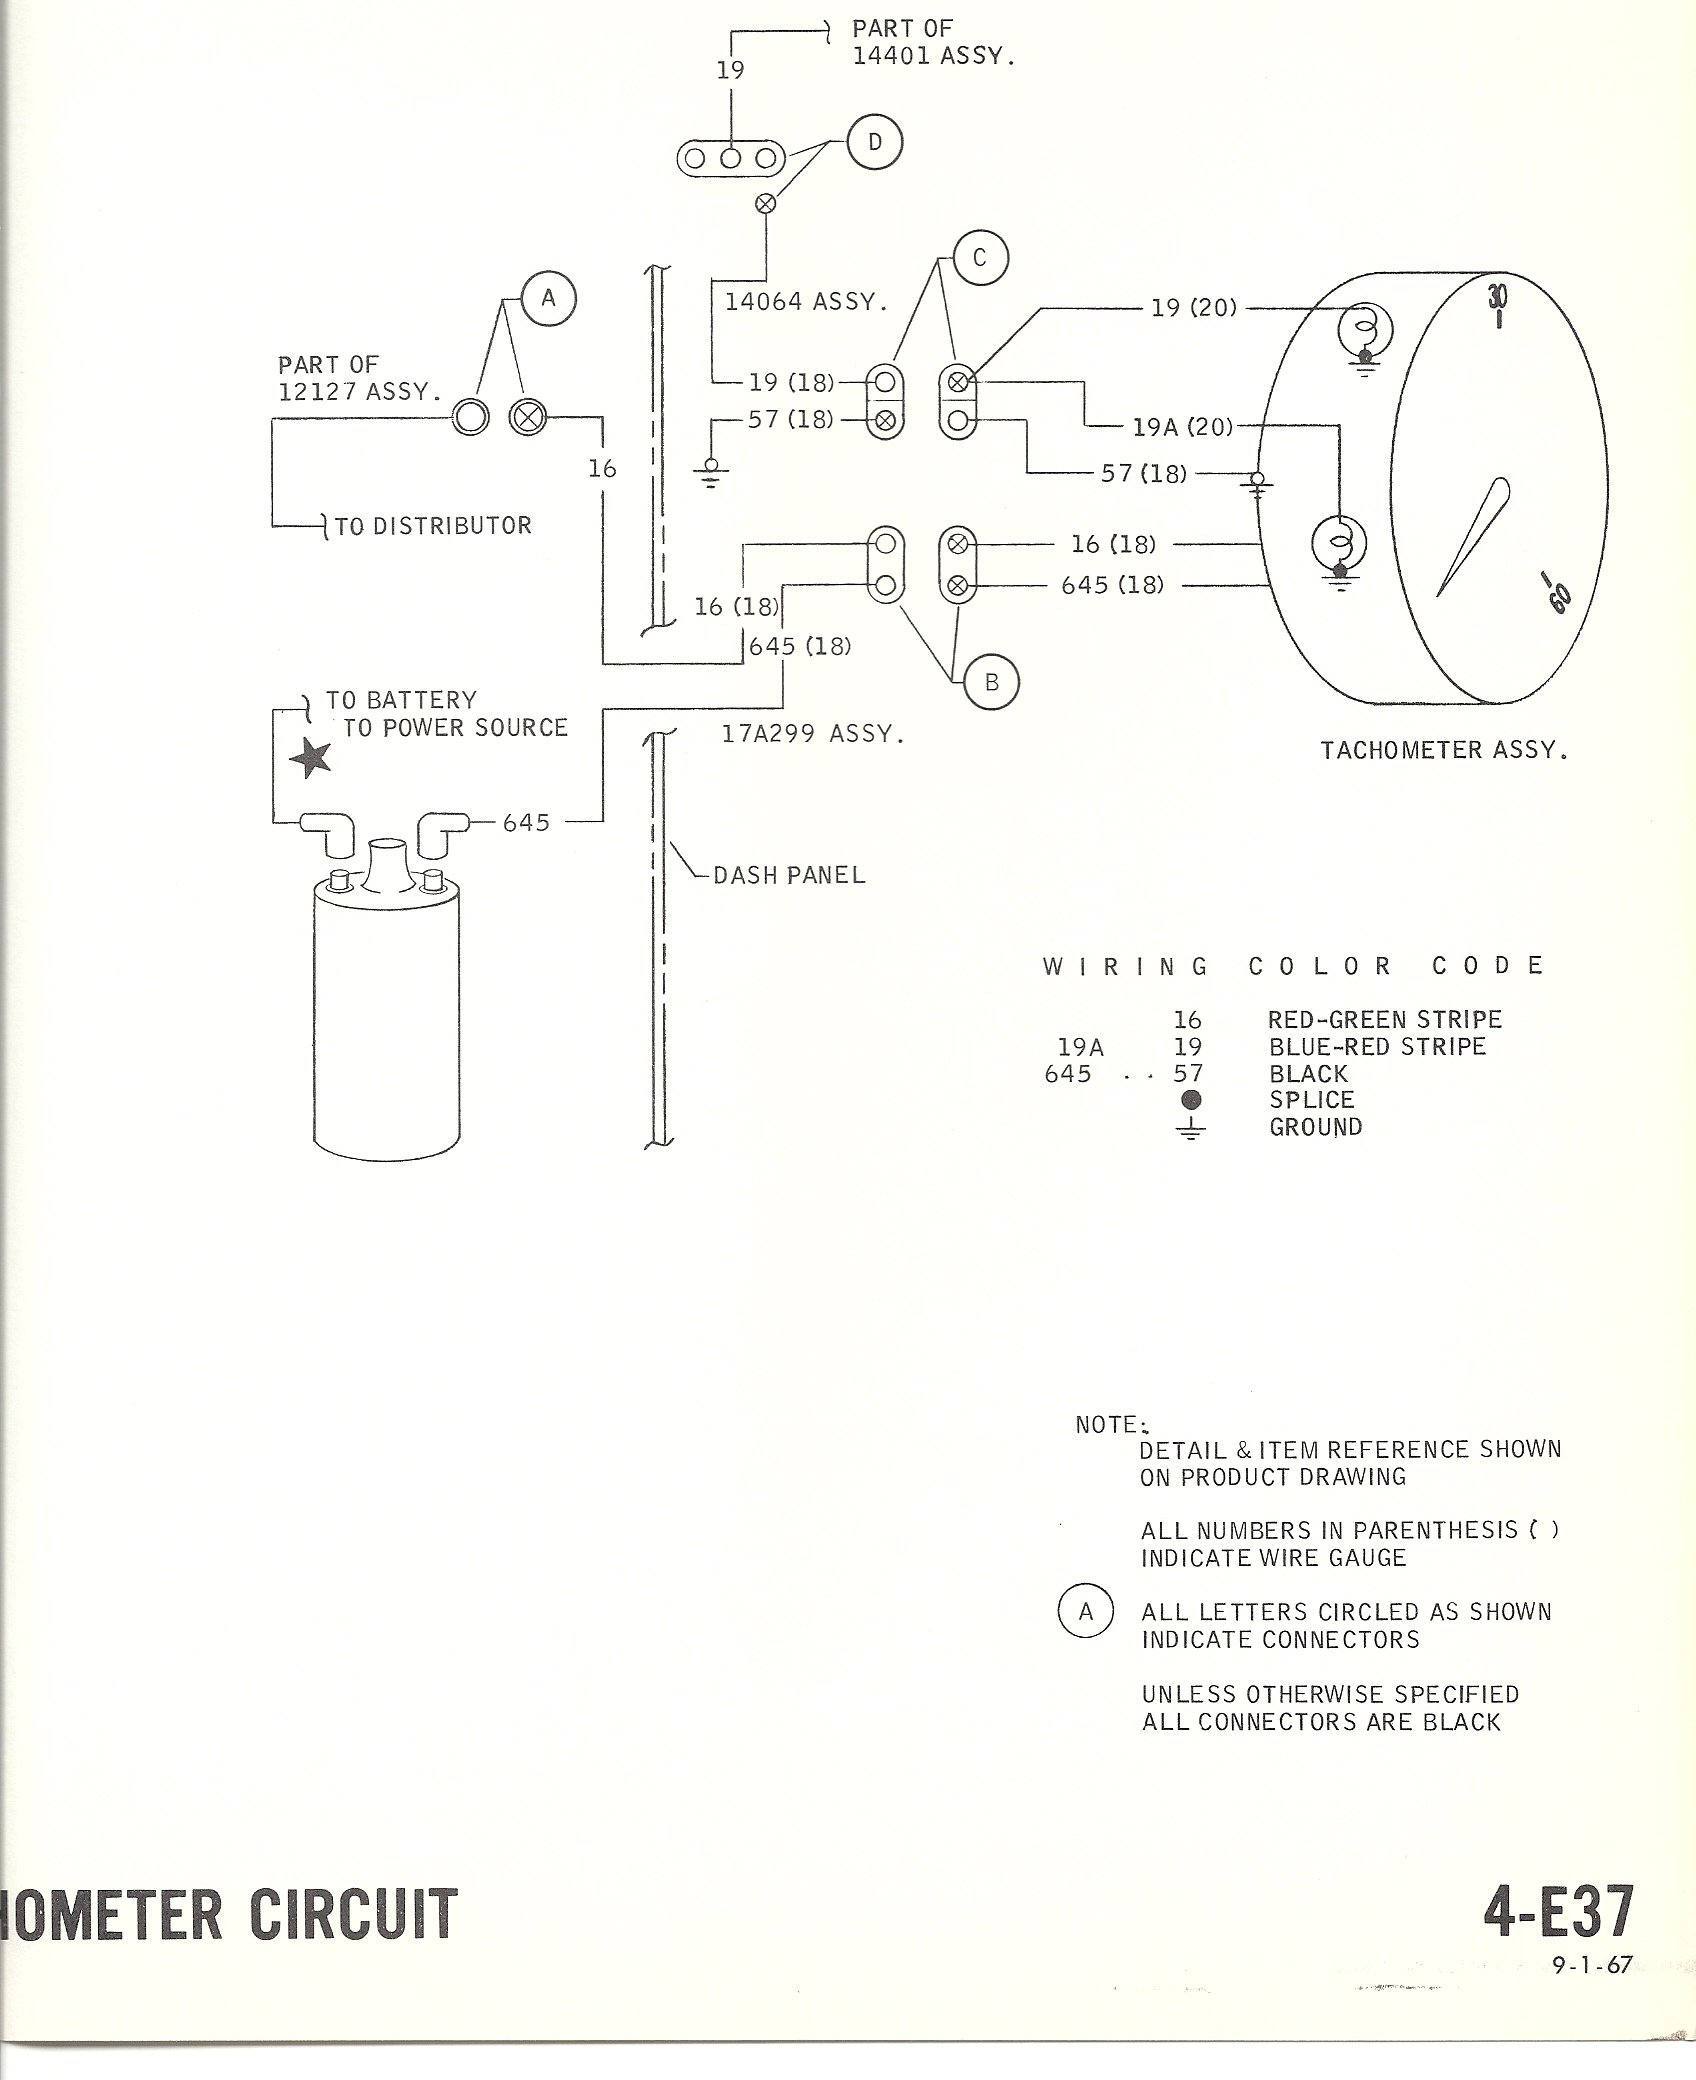 2005 Mustang Tachometer Wiring Schematics Diagram 1968 Headlight Switch Diagrams With Tach Please Help Ford Forum Faria Vintage